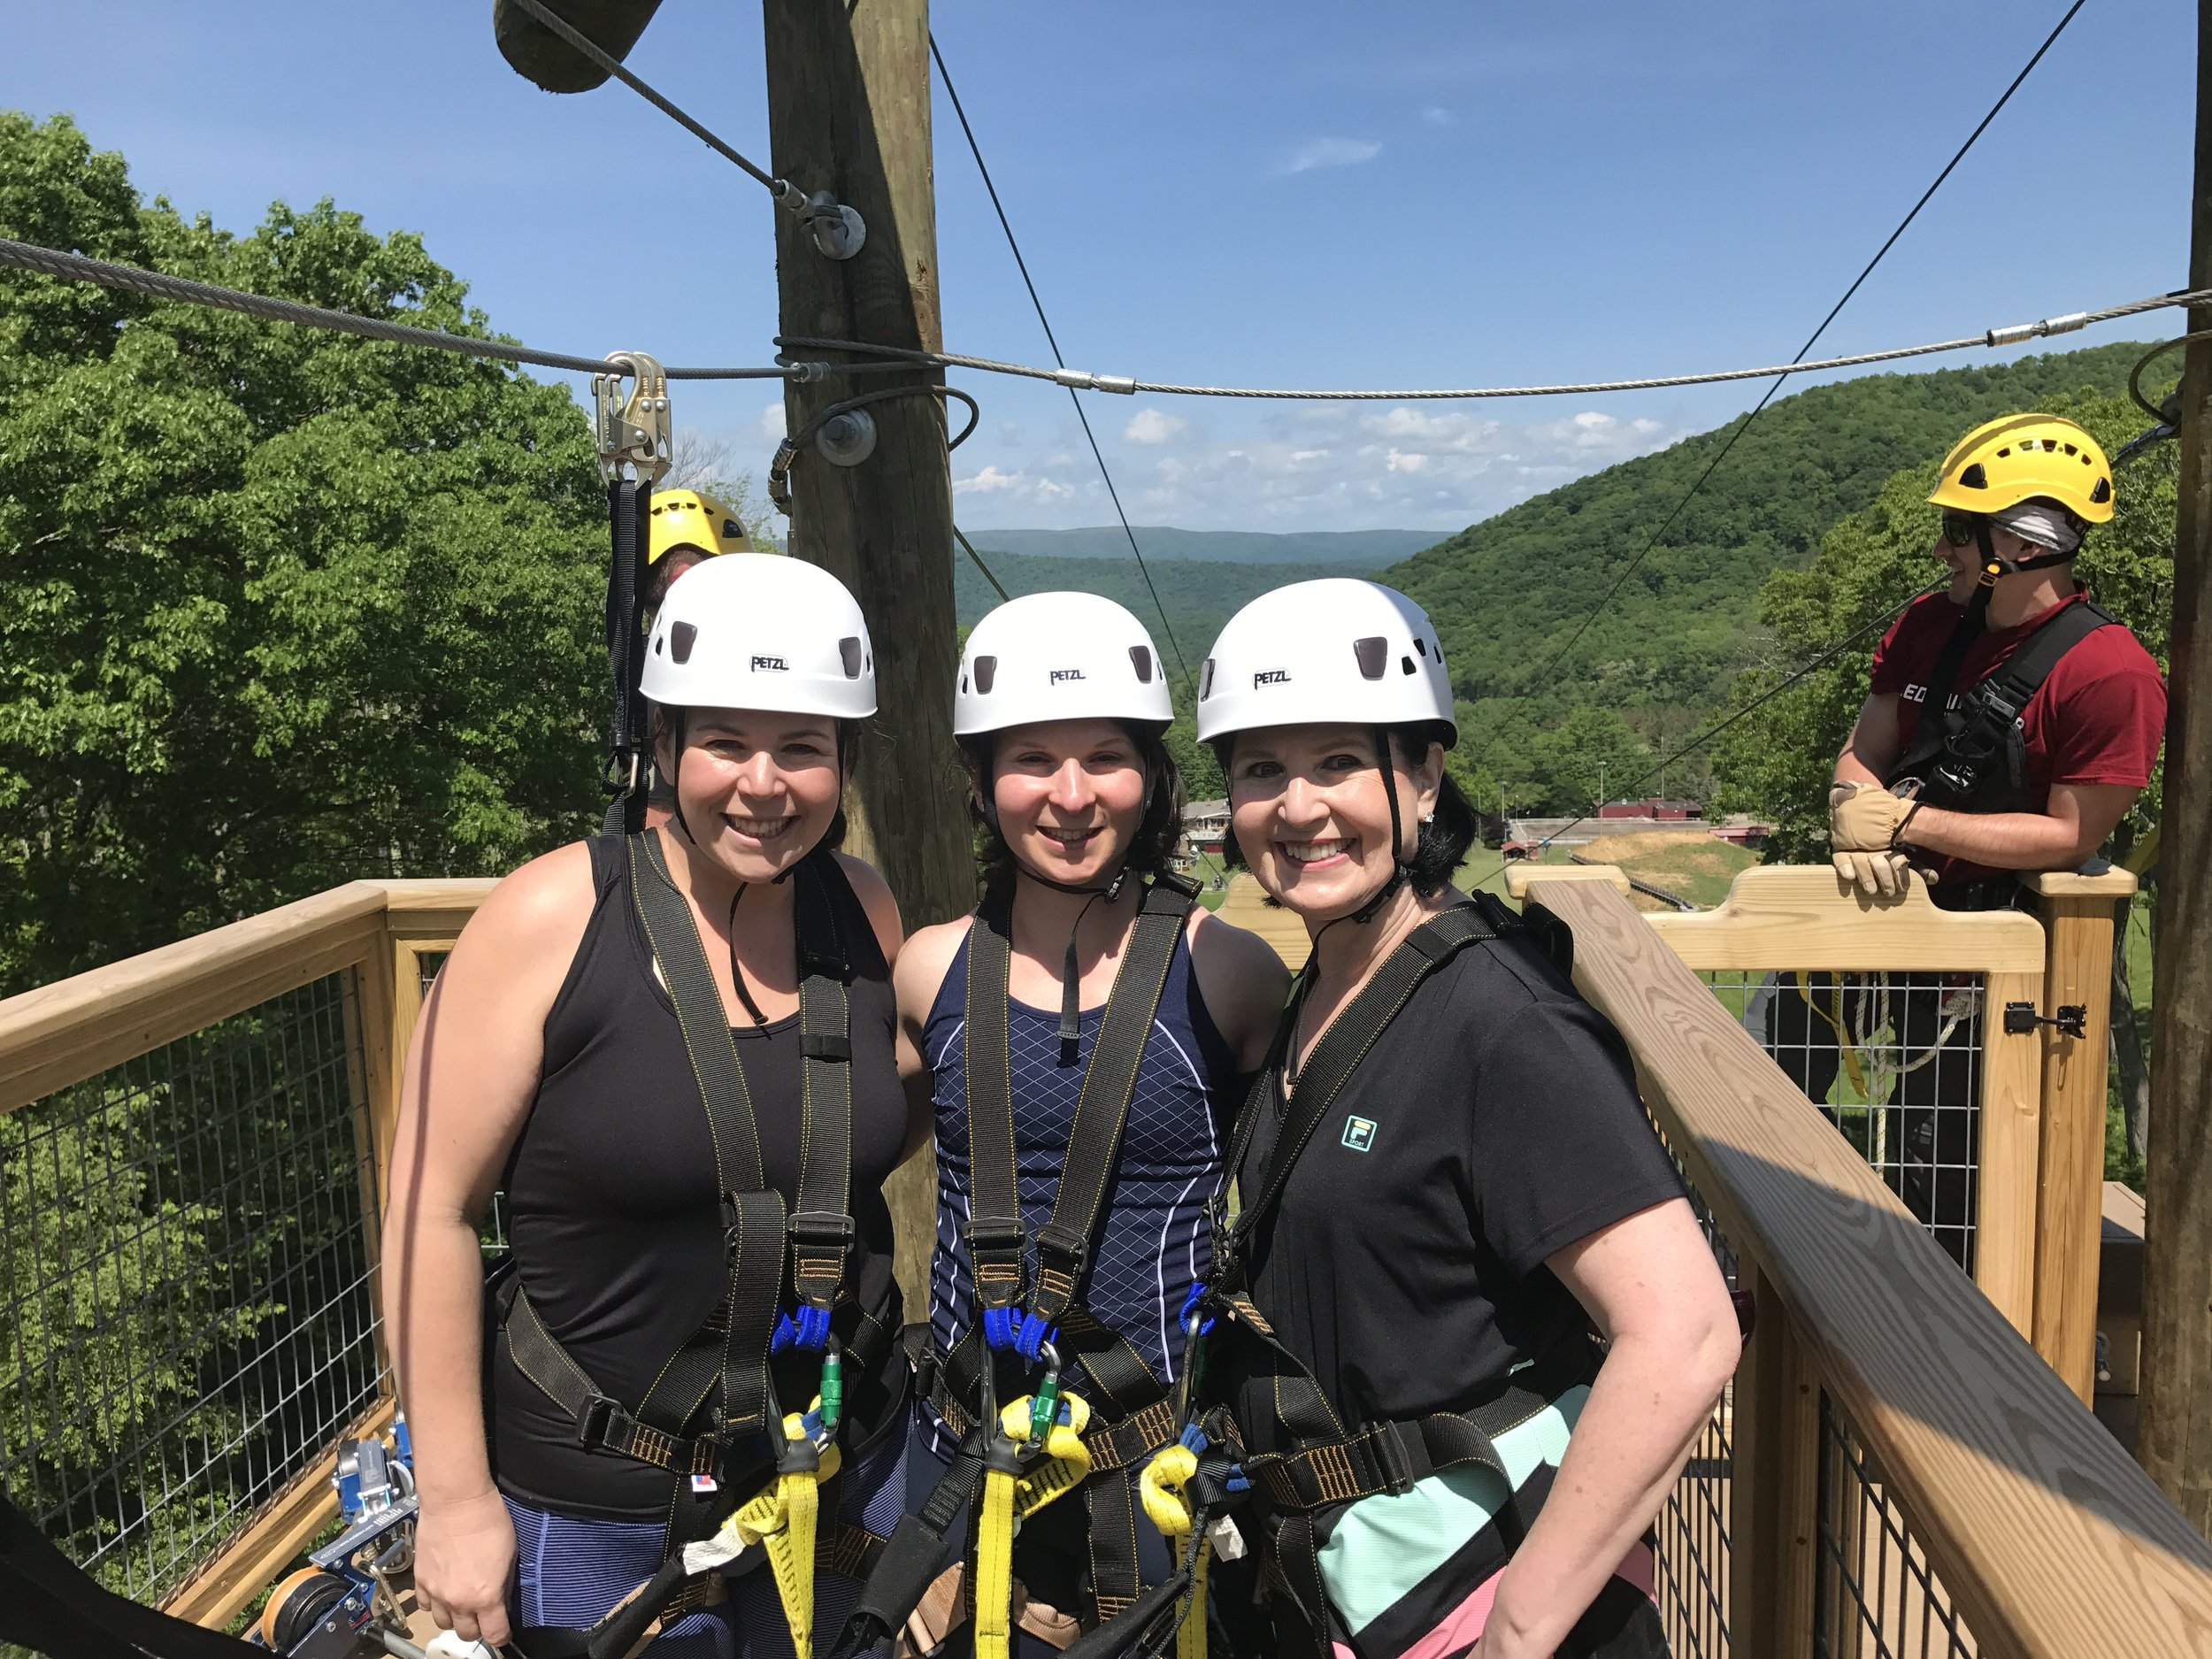 My sister, my mom and I - ziplining in Virginia